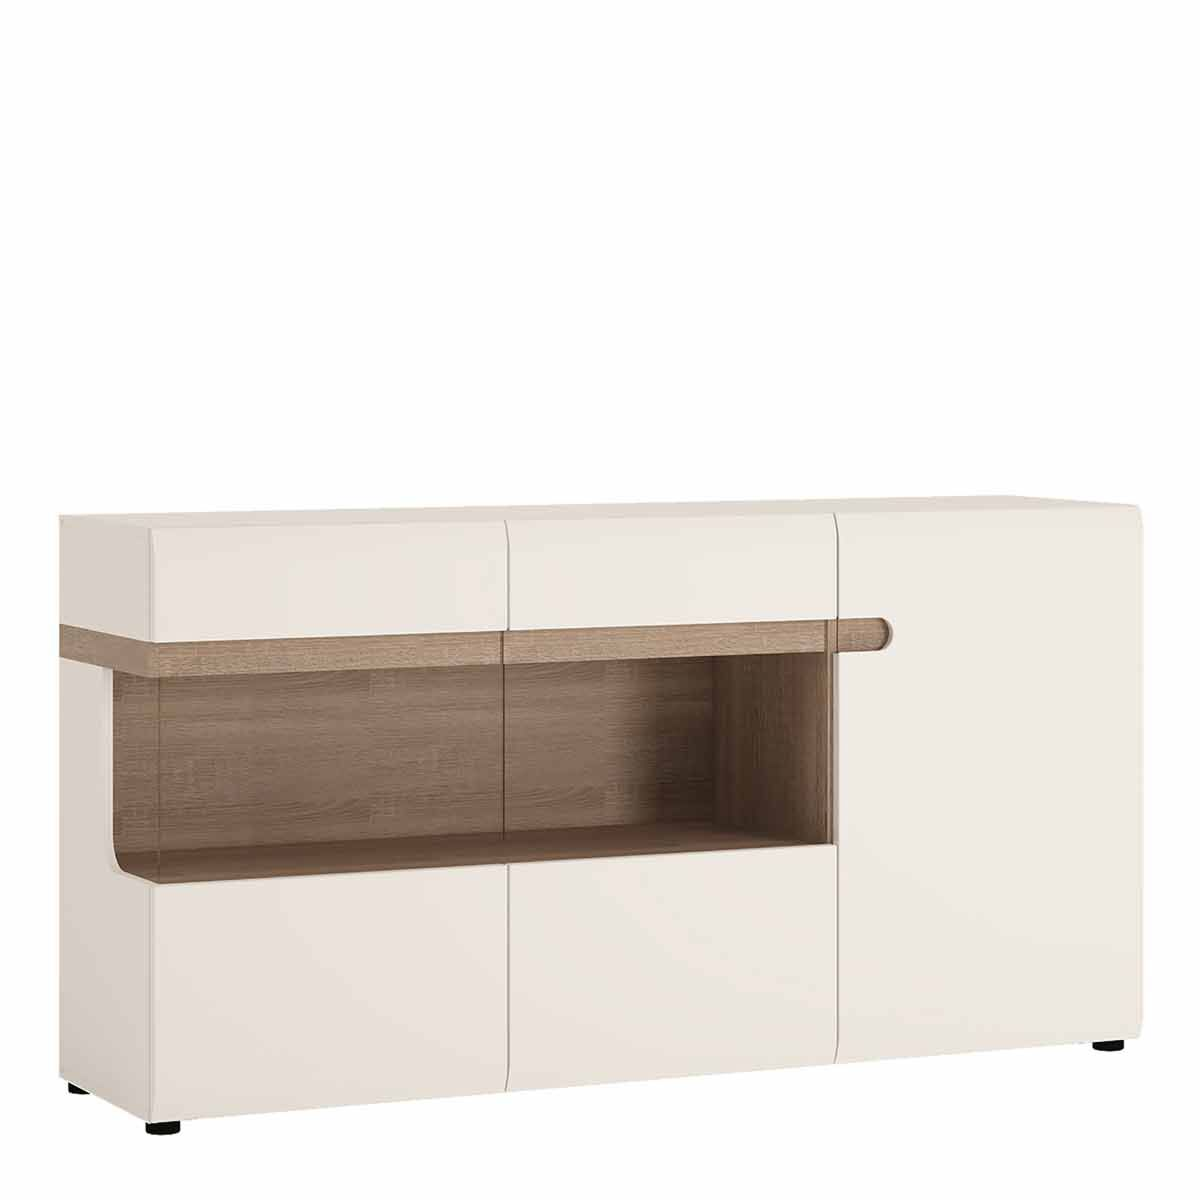 Chelsea Living 3 Door Glazed Sideboard